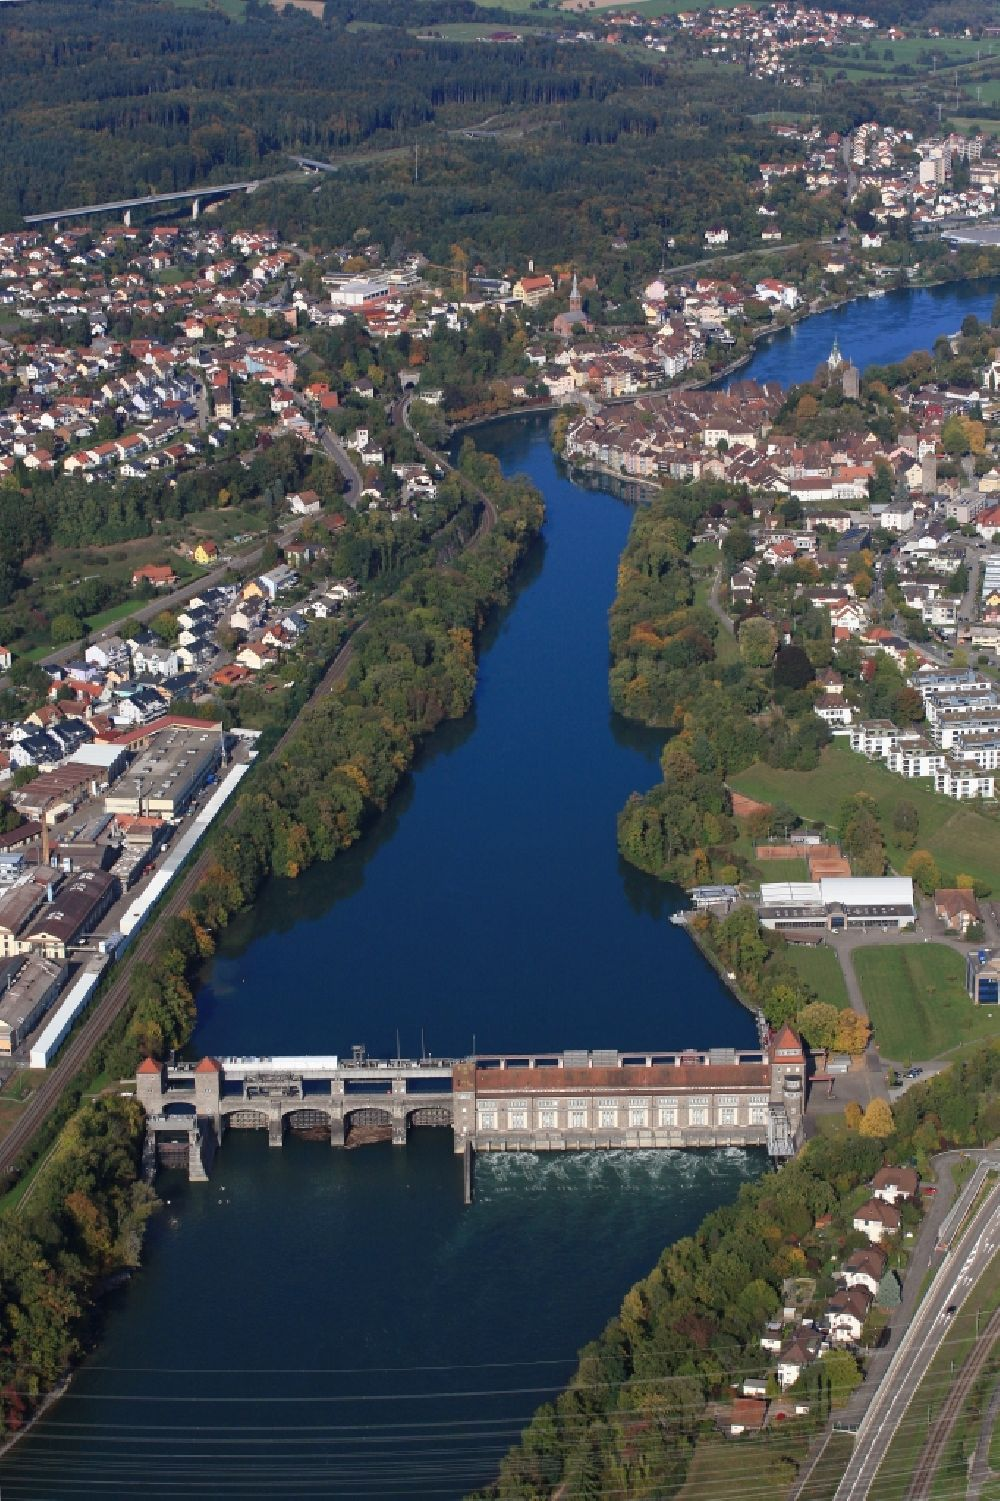 Laufenburg from the bird's eye view: Structure and dams of the hydroelectric power plant at the Rhine river in Laufenburg in the state Baden-Wurttemberg, Germany.